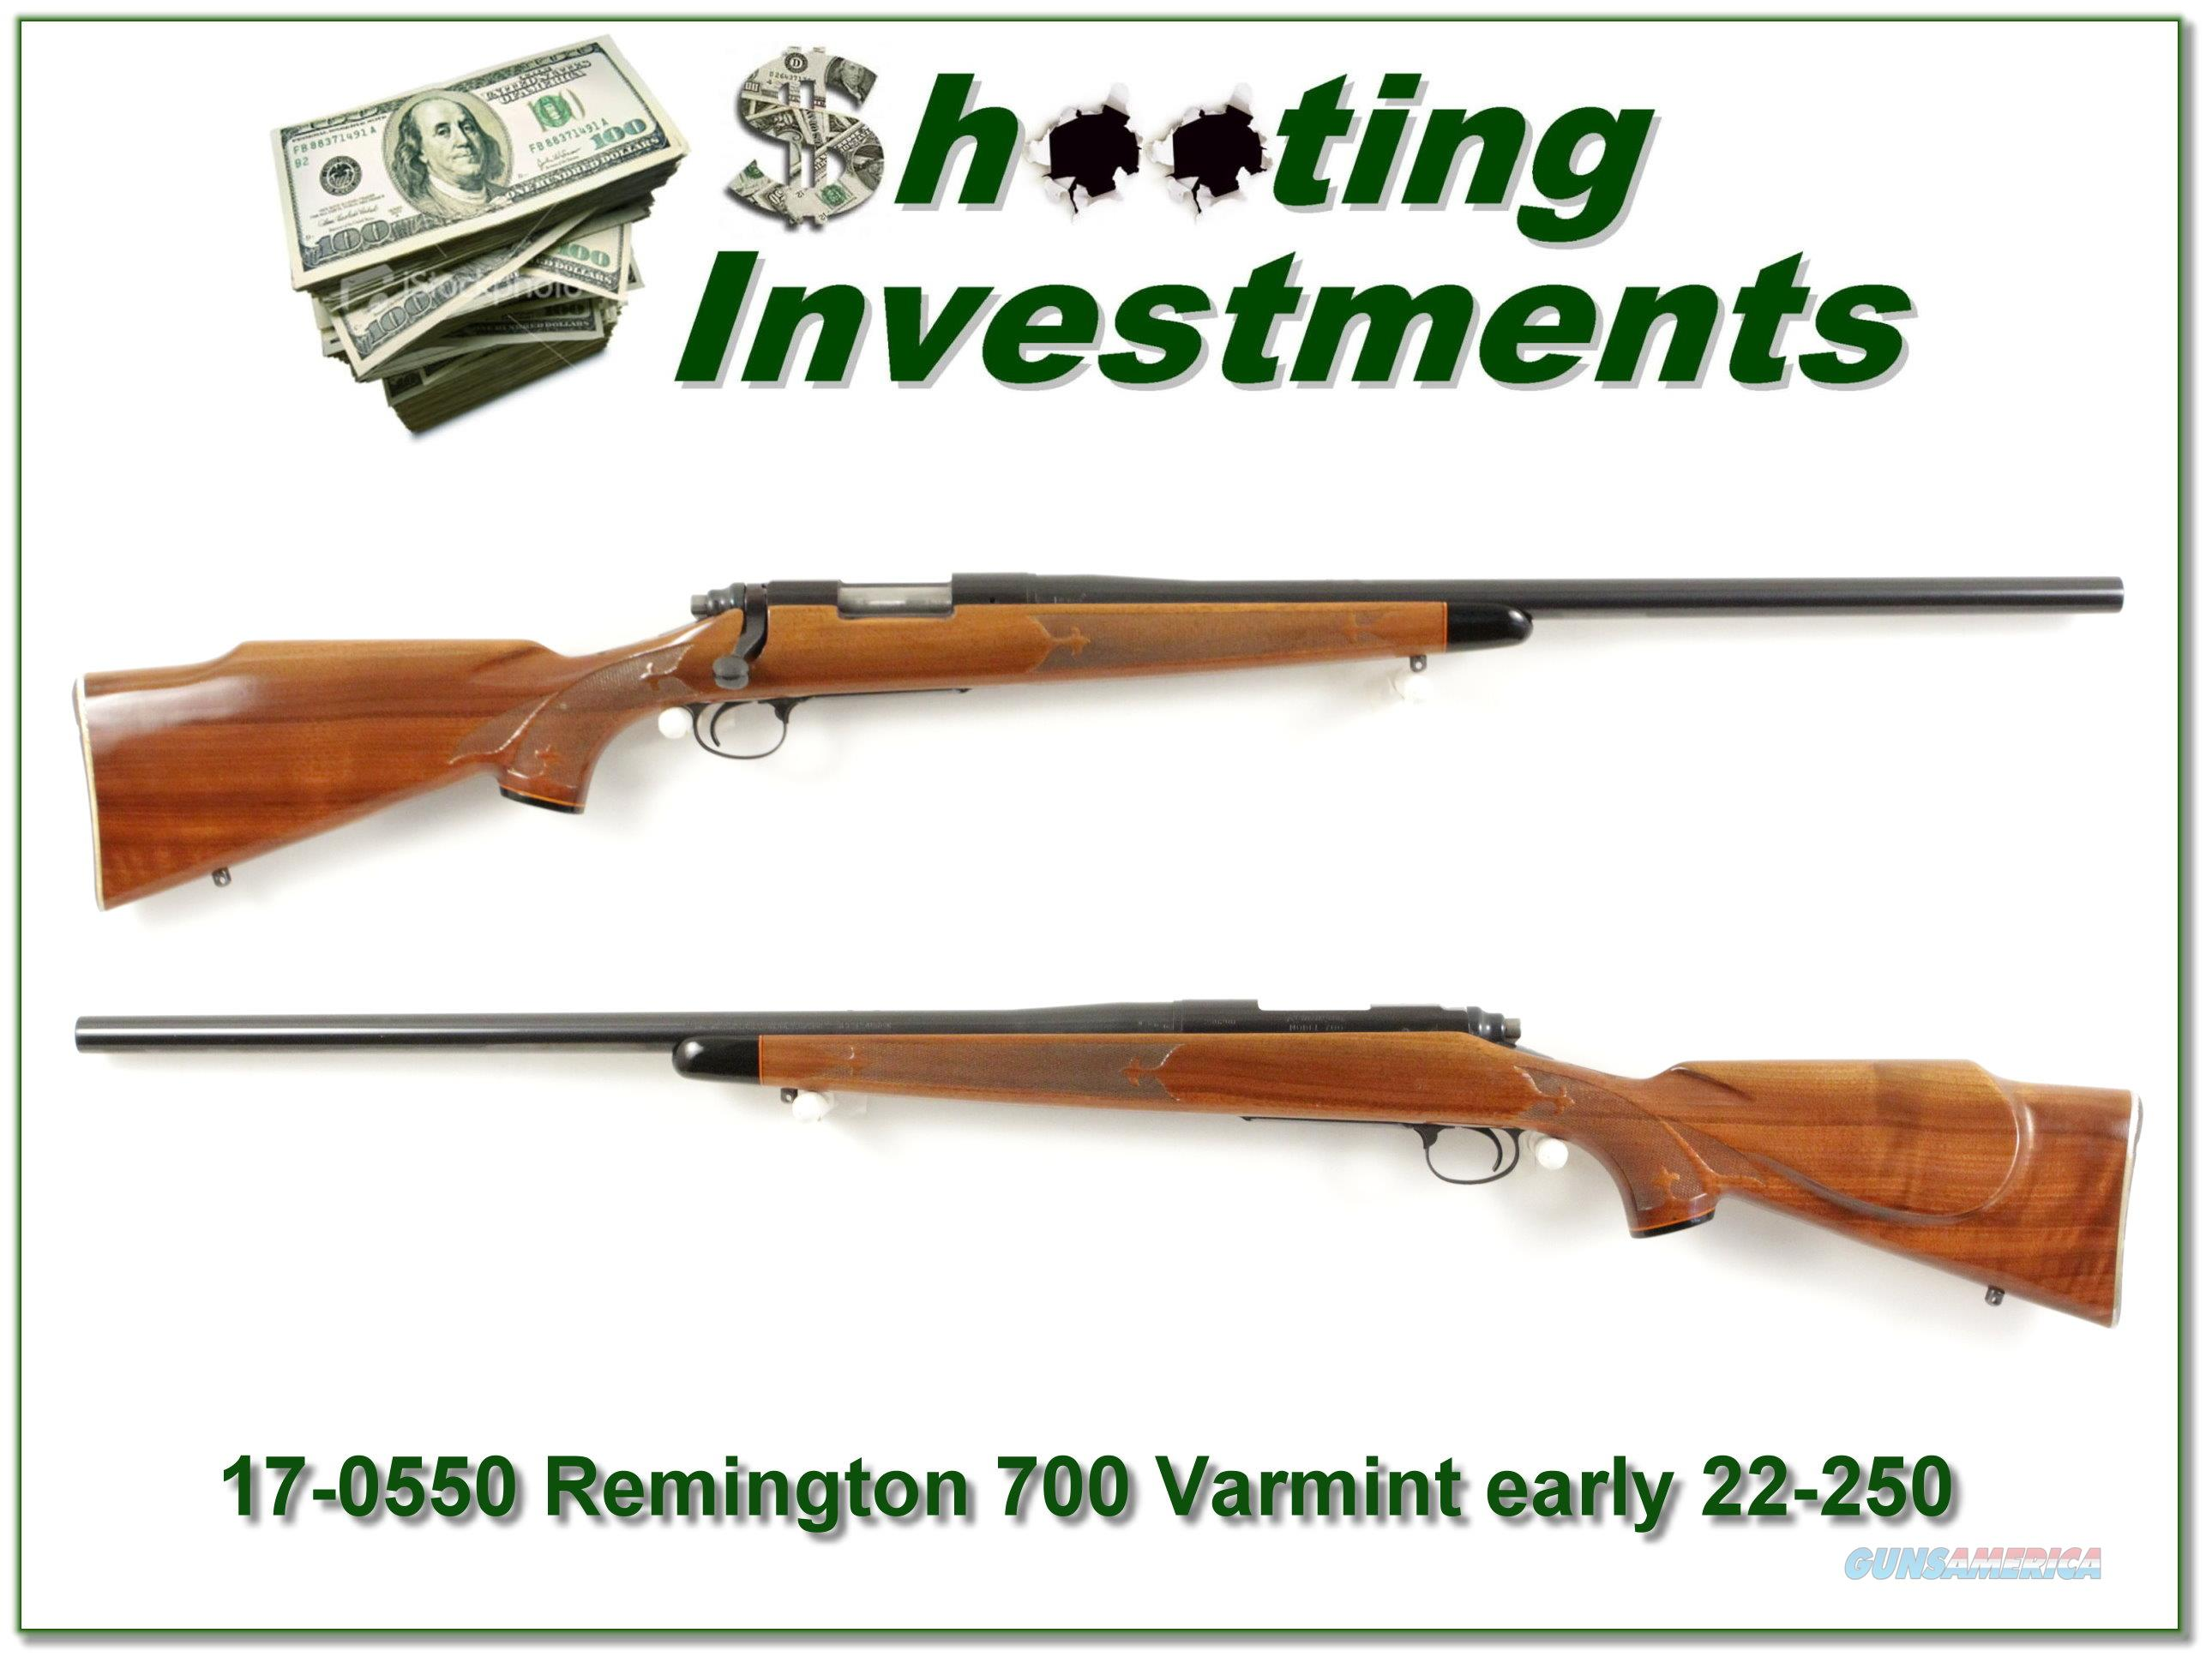 Remington 700 Varmint Special 22-250 early Pressed collector!  Guns > Rifles > Remington Rifles - Modern > Model 700 > Sporting